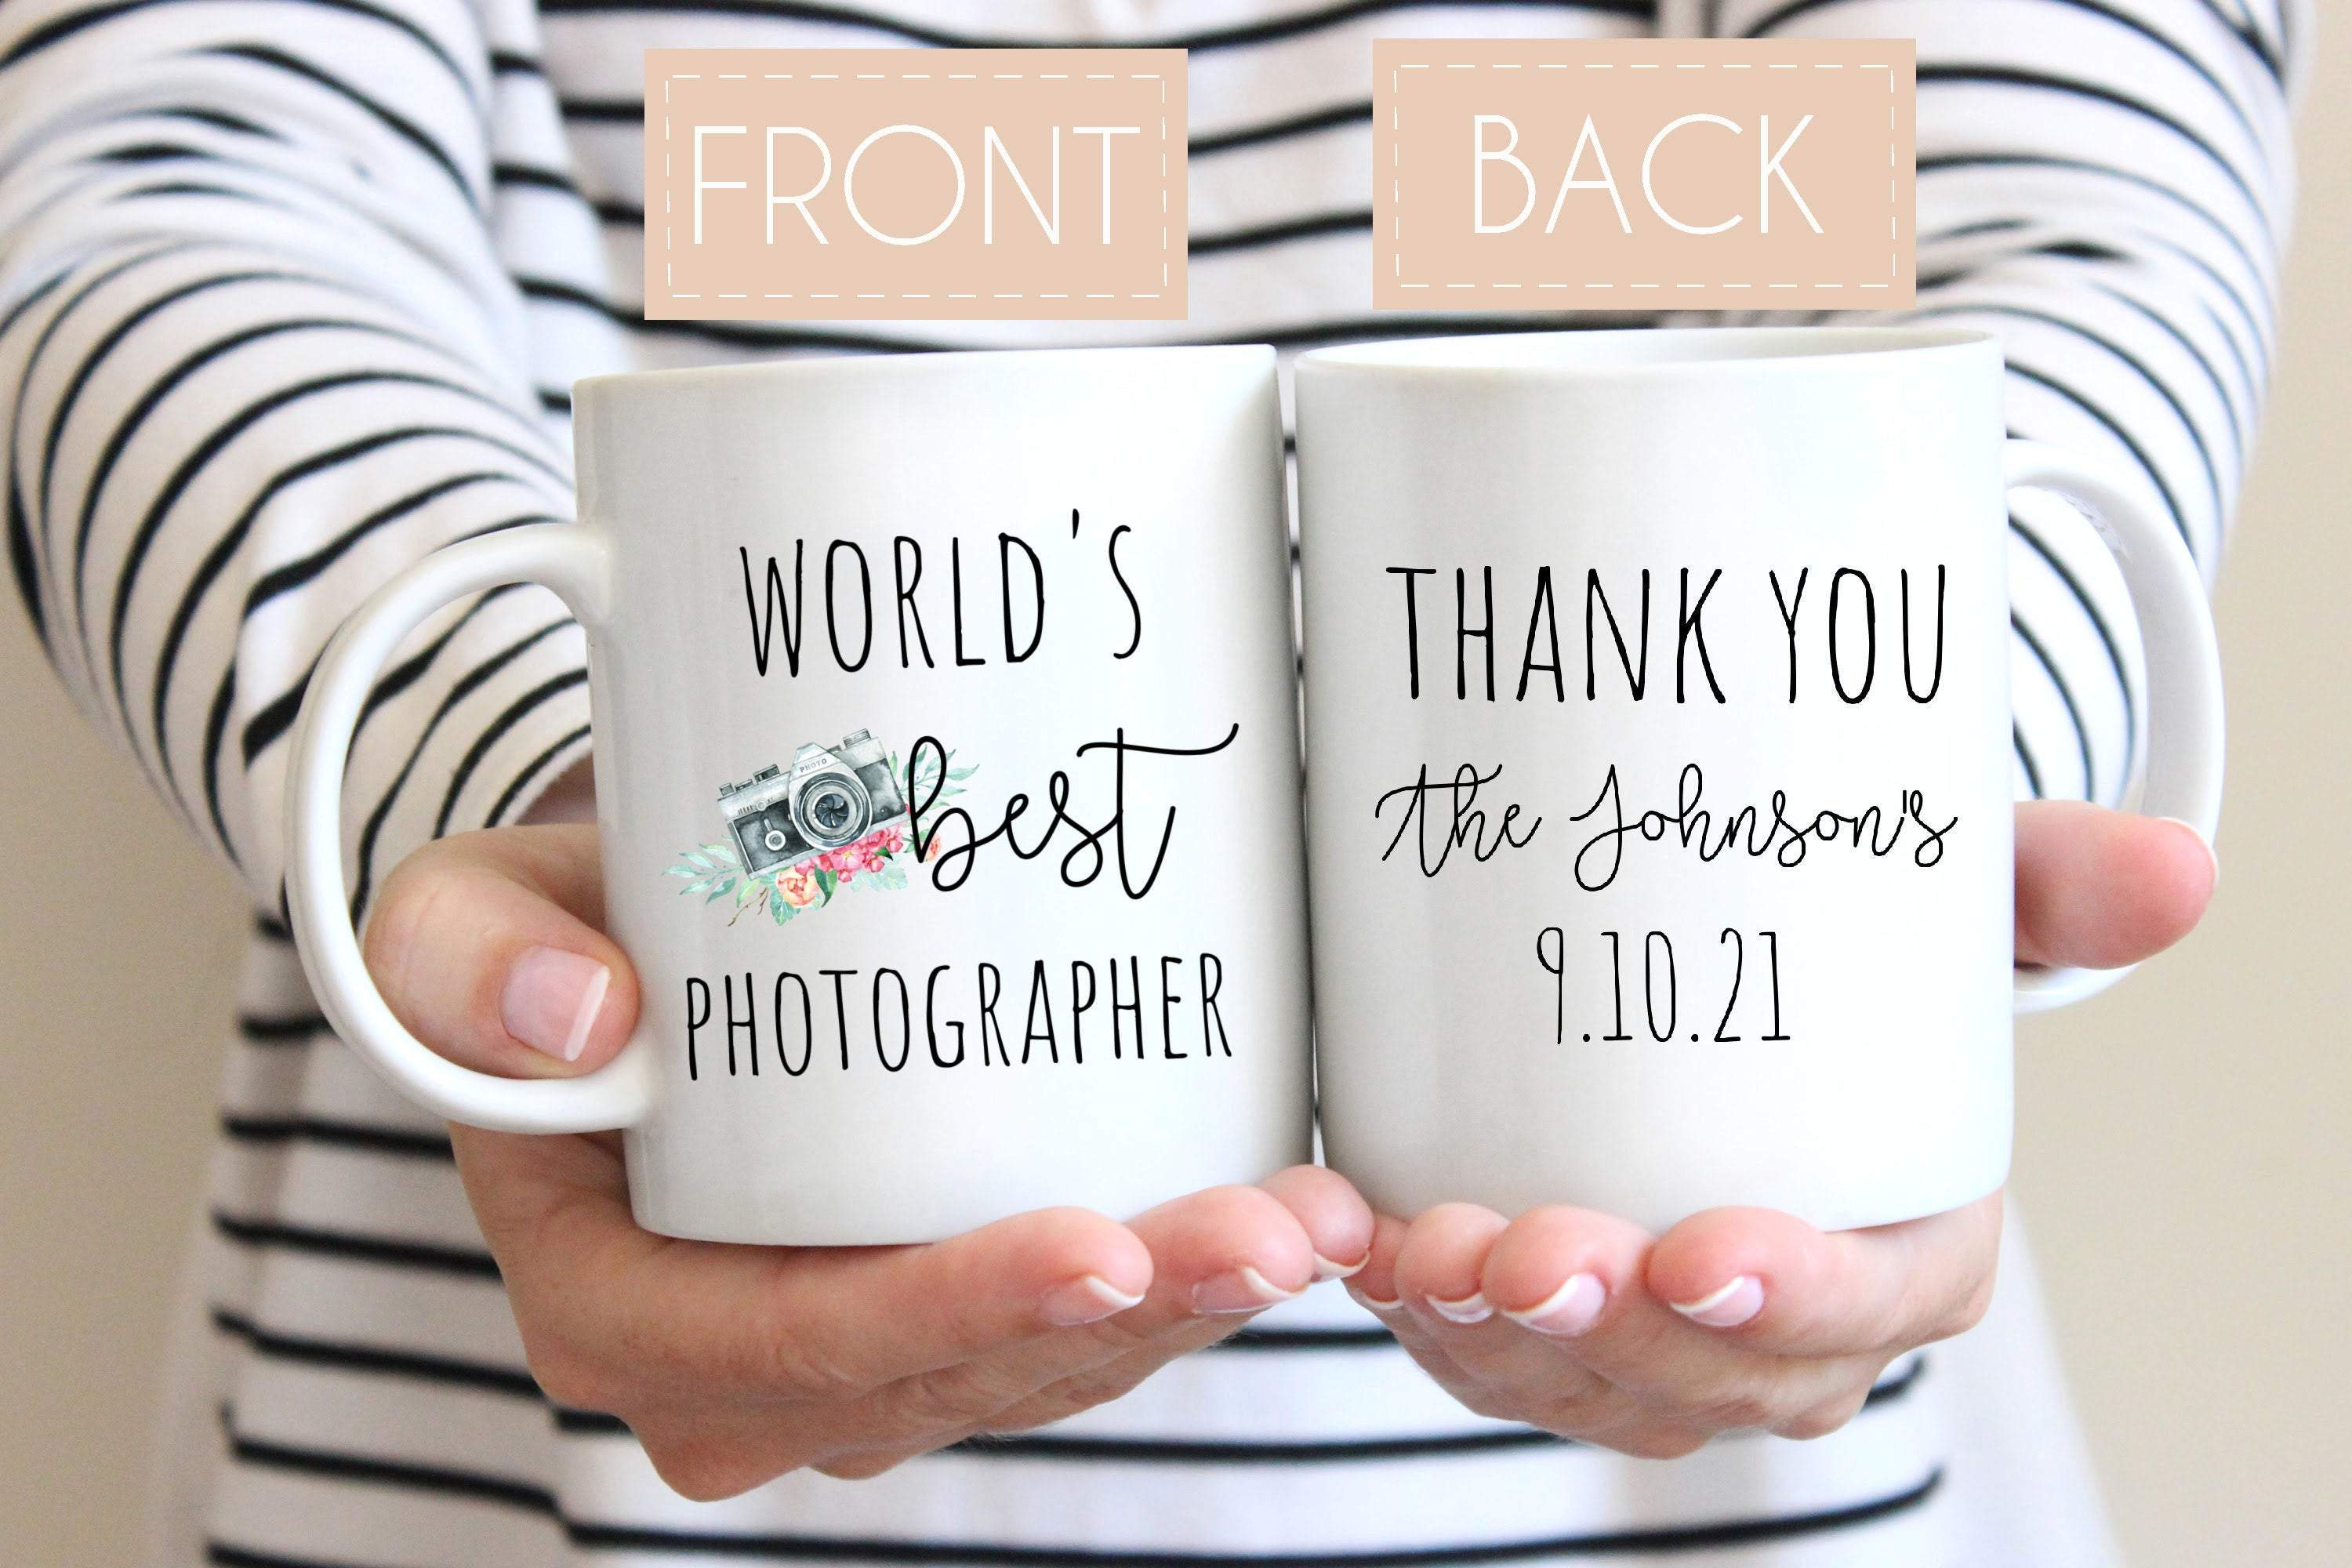 Wedding Photographer Mug